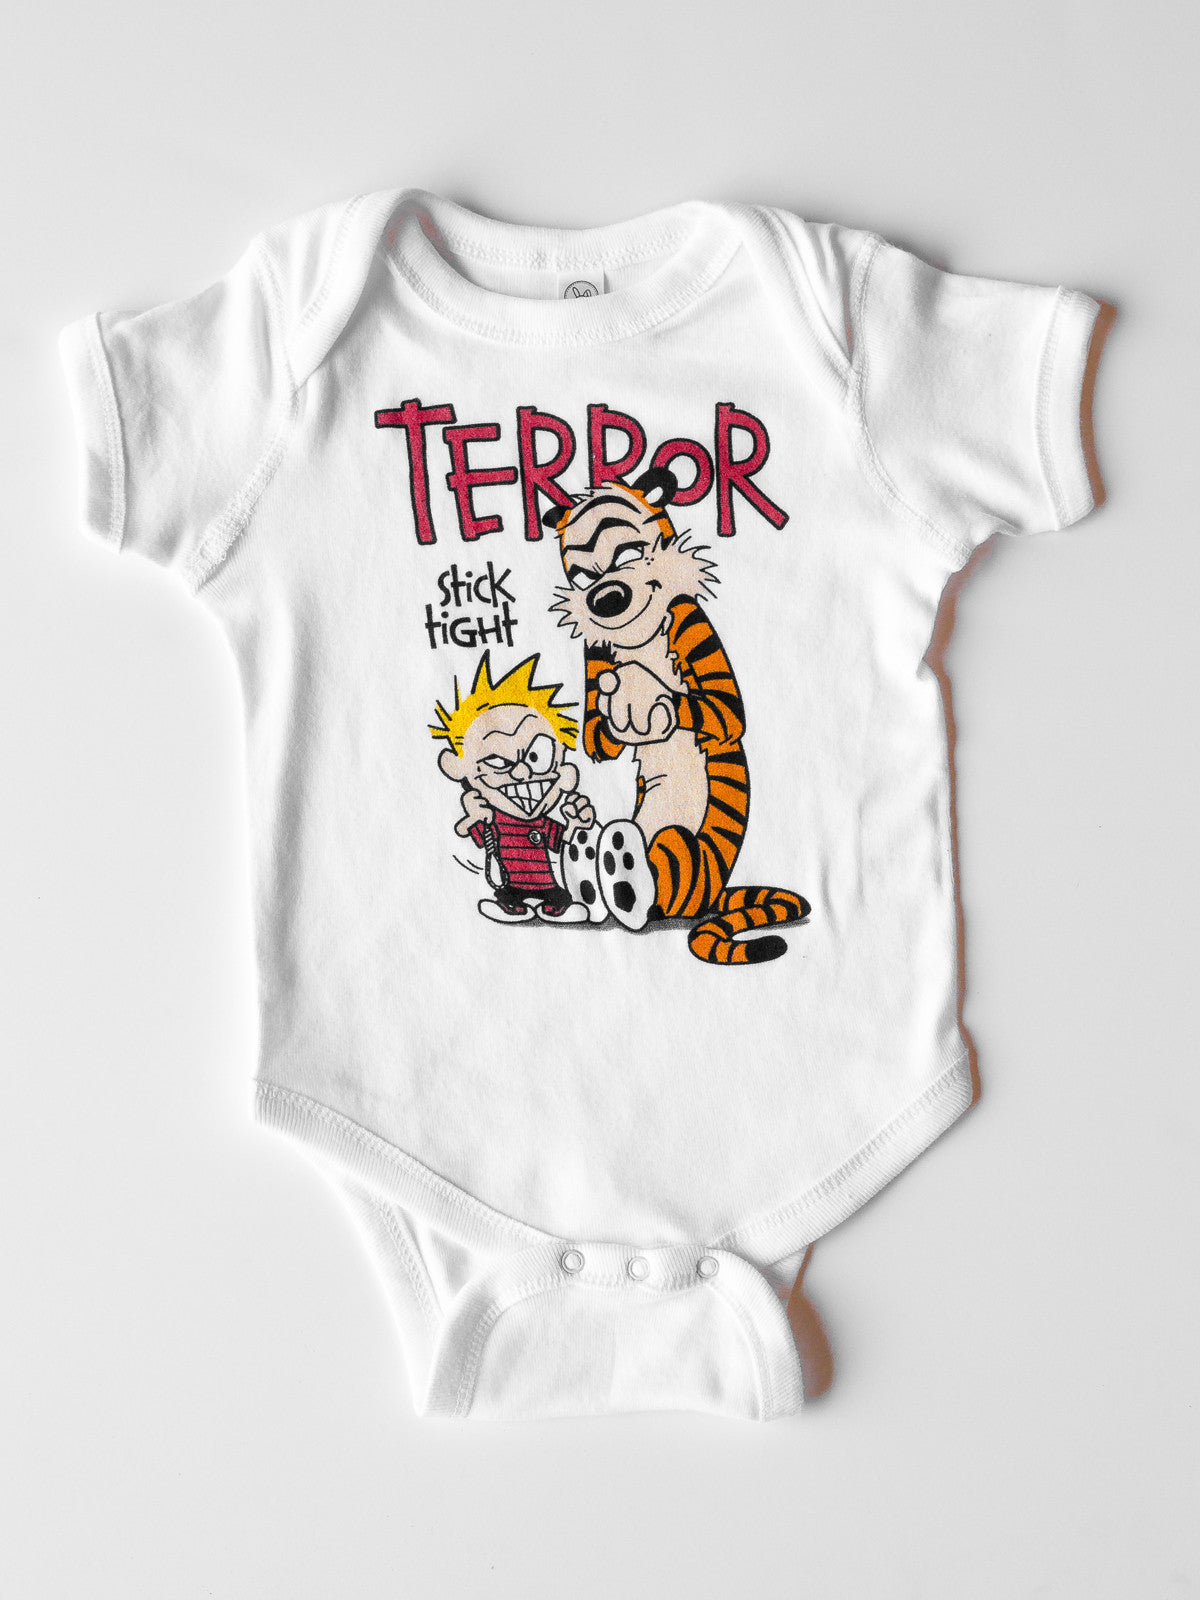 Terror - Stick Tight Onesie - MerchLimited - 1